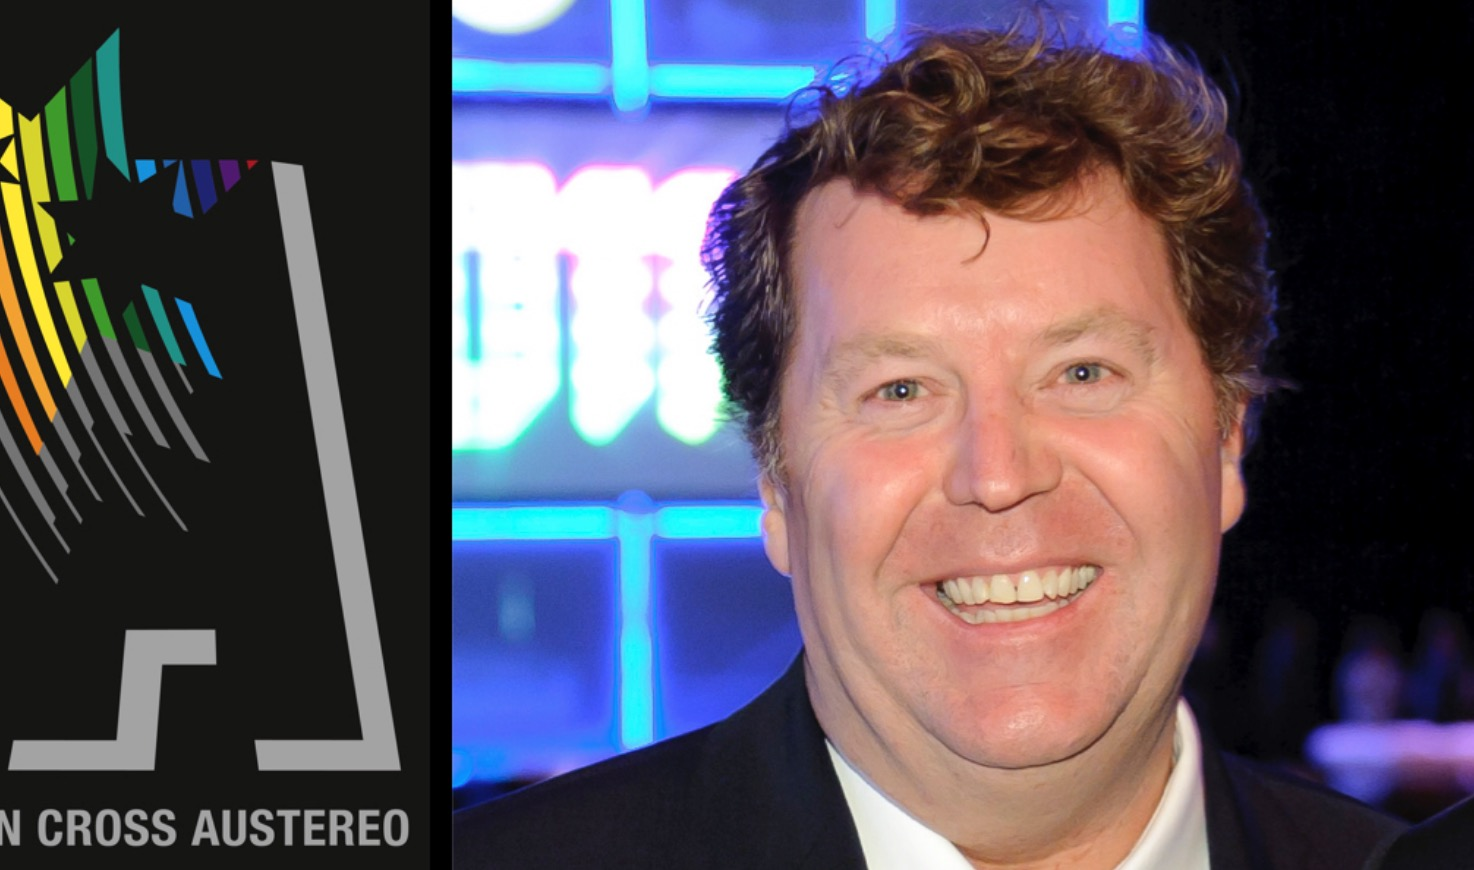 Southern Cross Austereo CEO, Grant Blackley